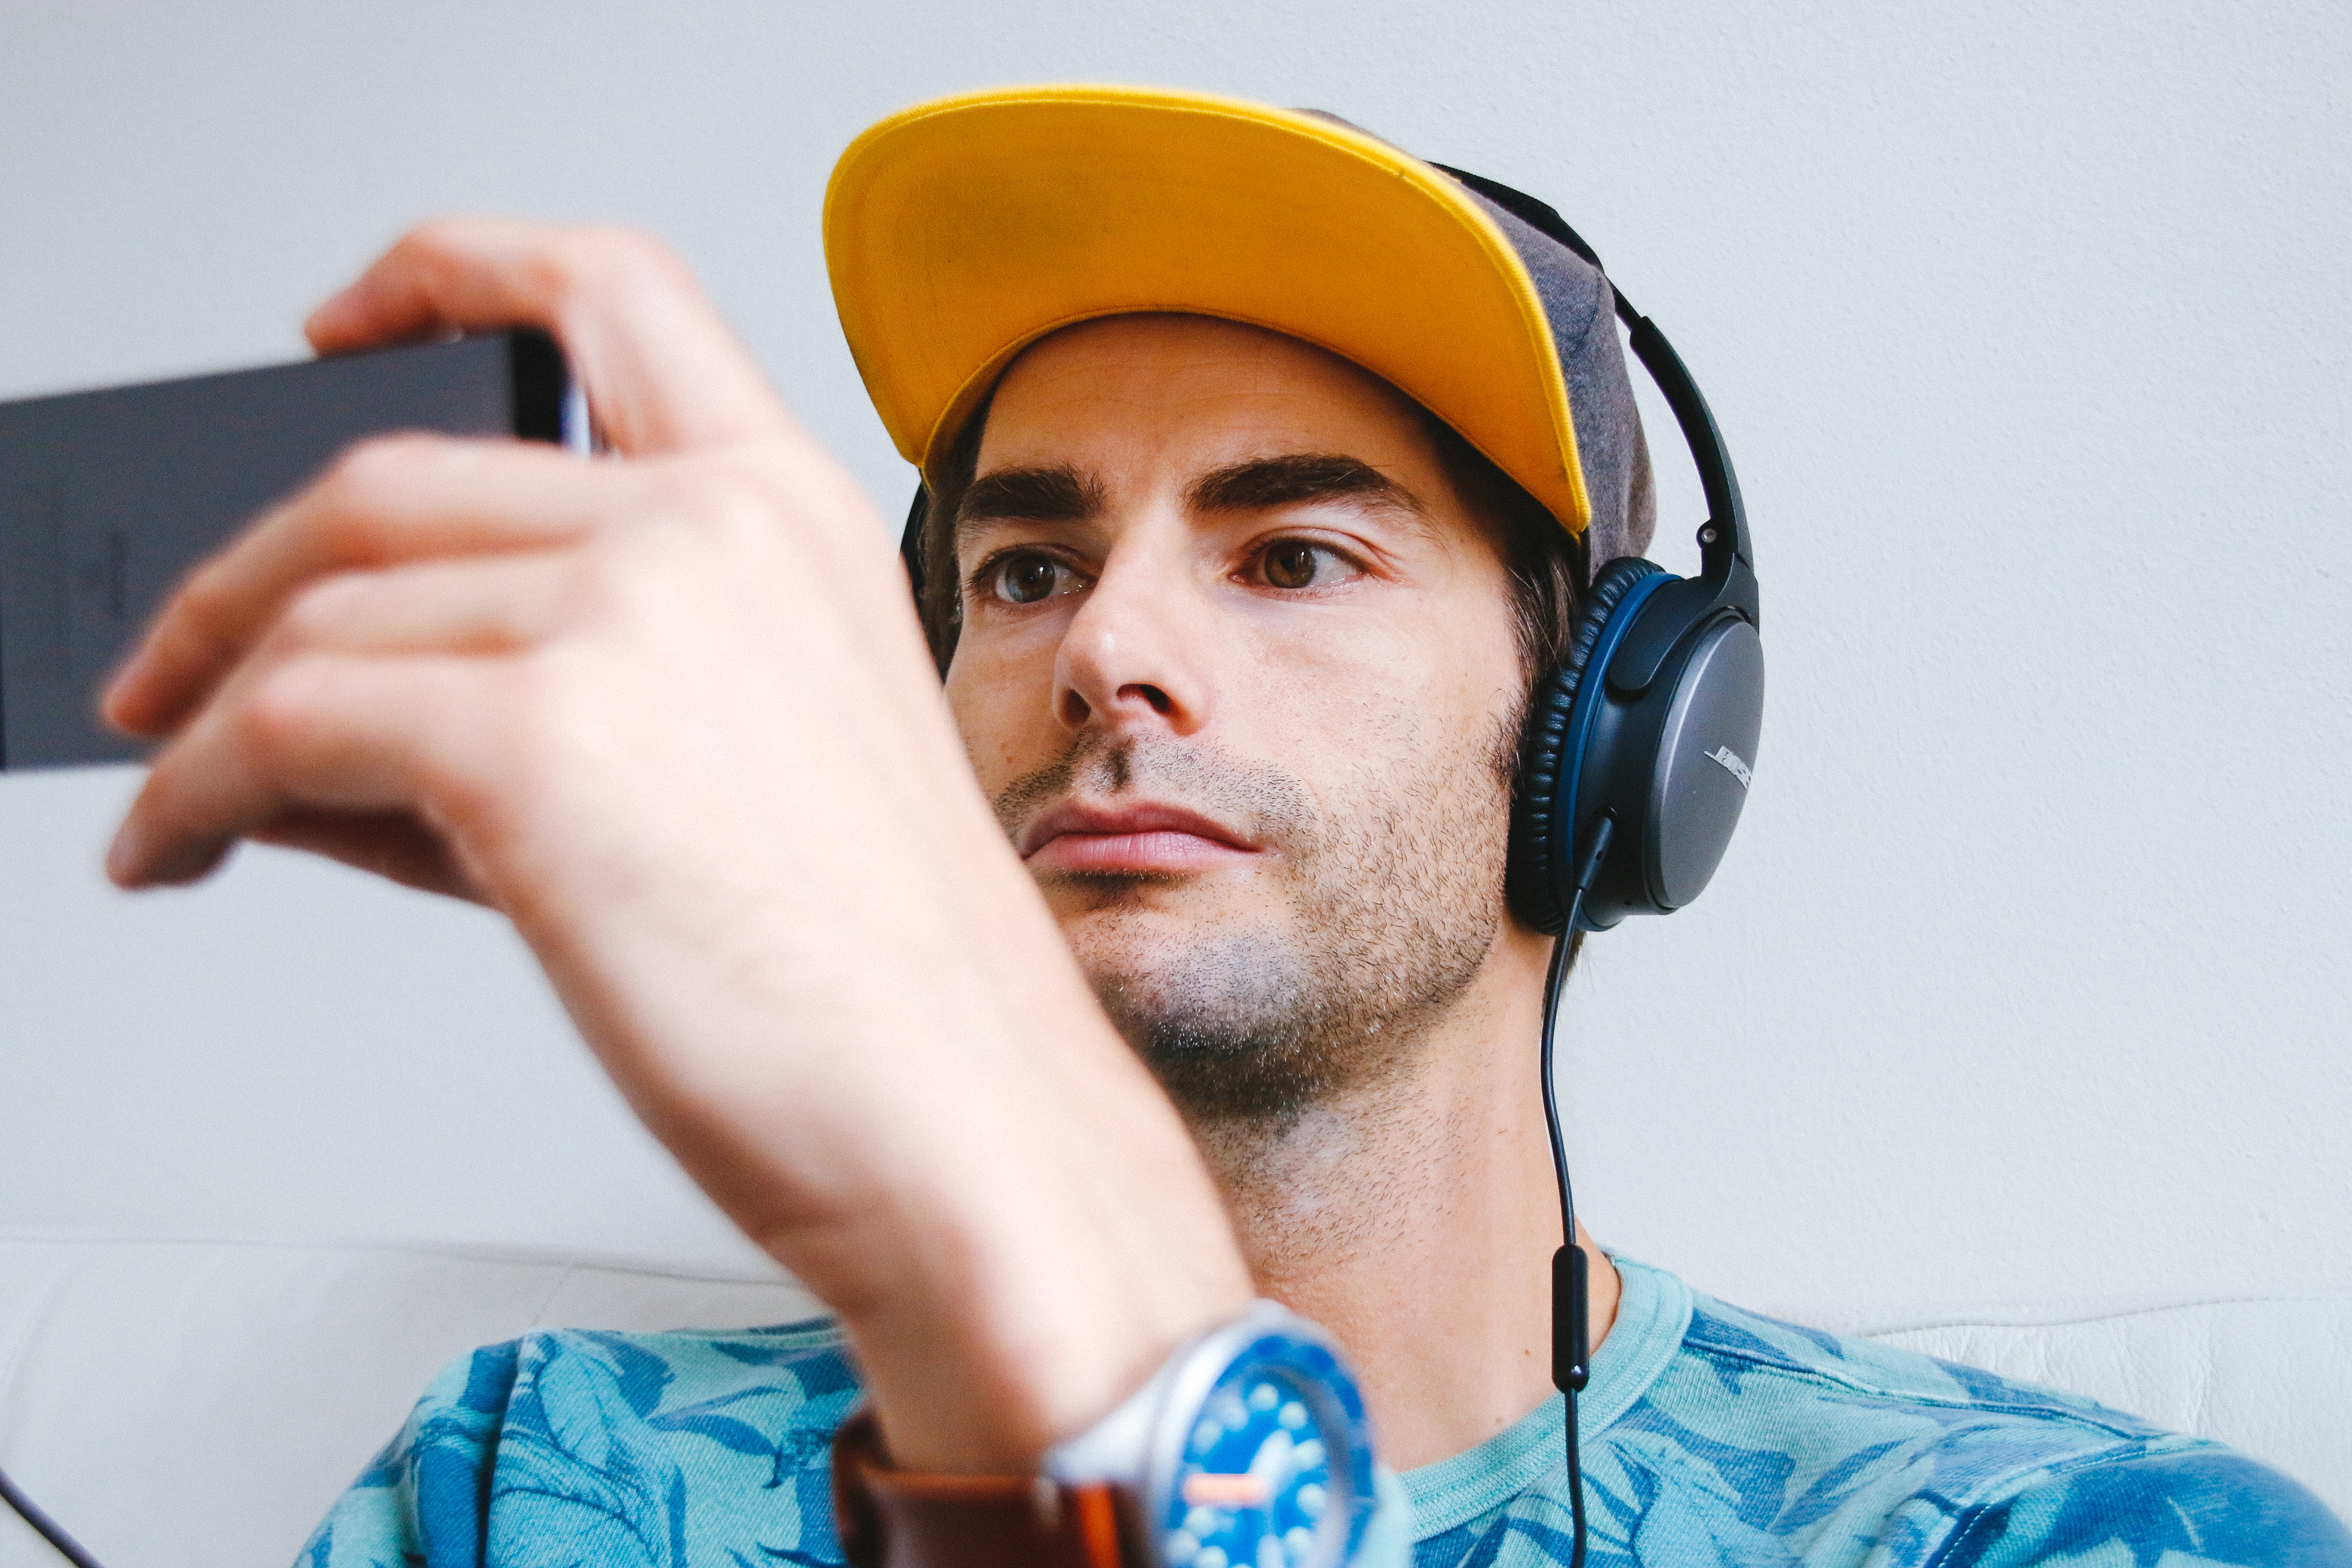 Man streaming video on a smartphone